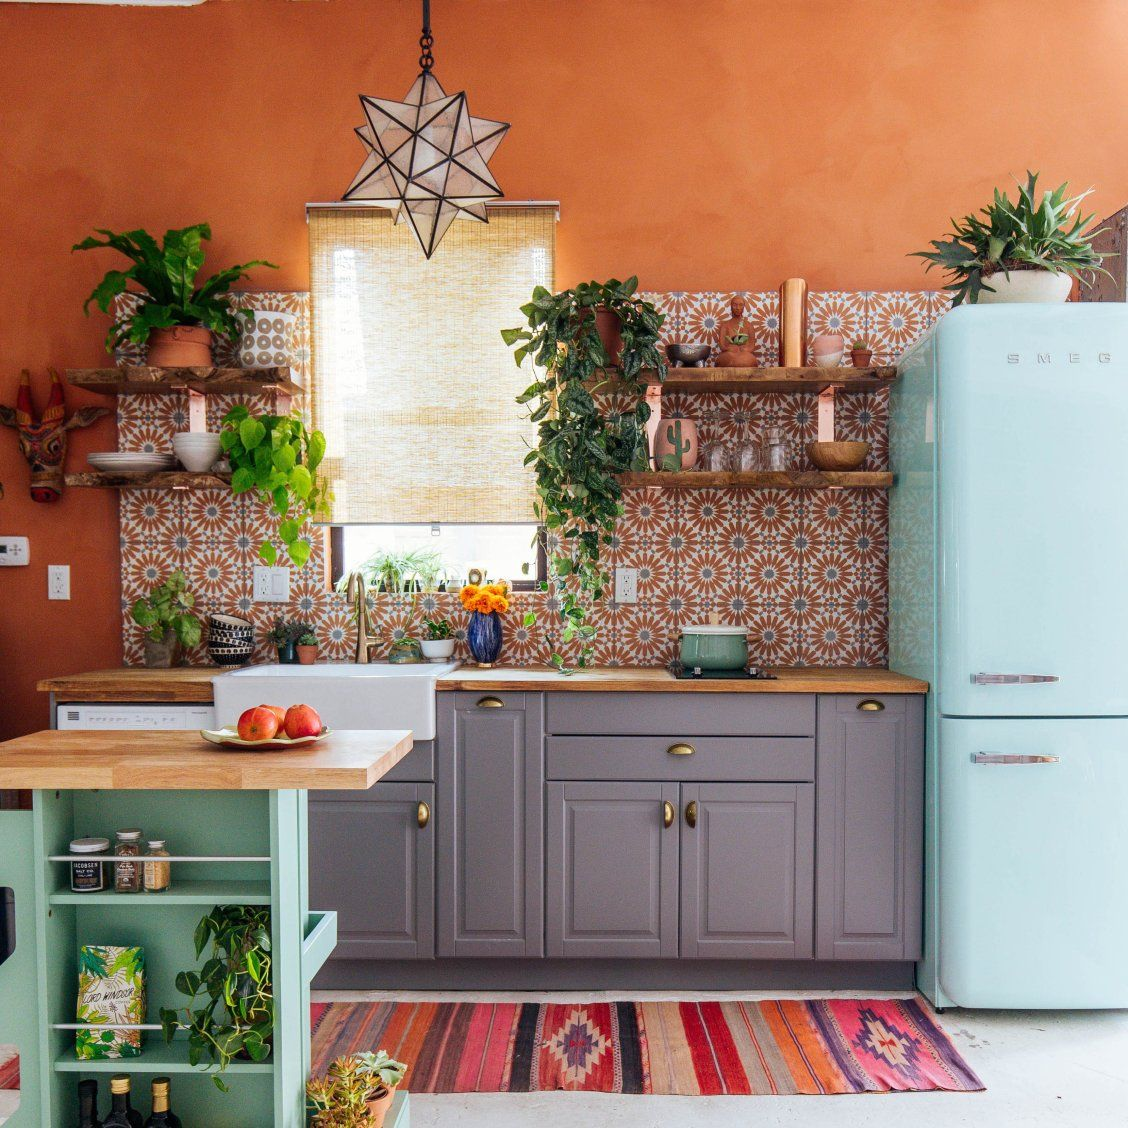 2019 decor trends based on your zodiac sign.